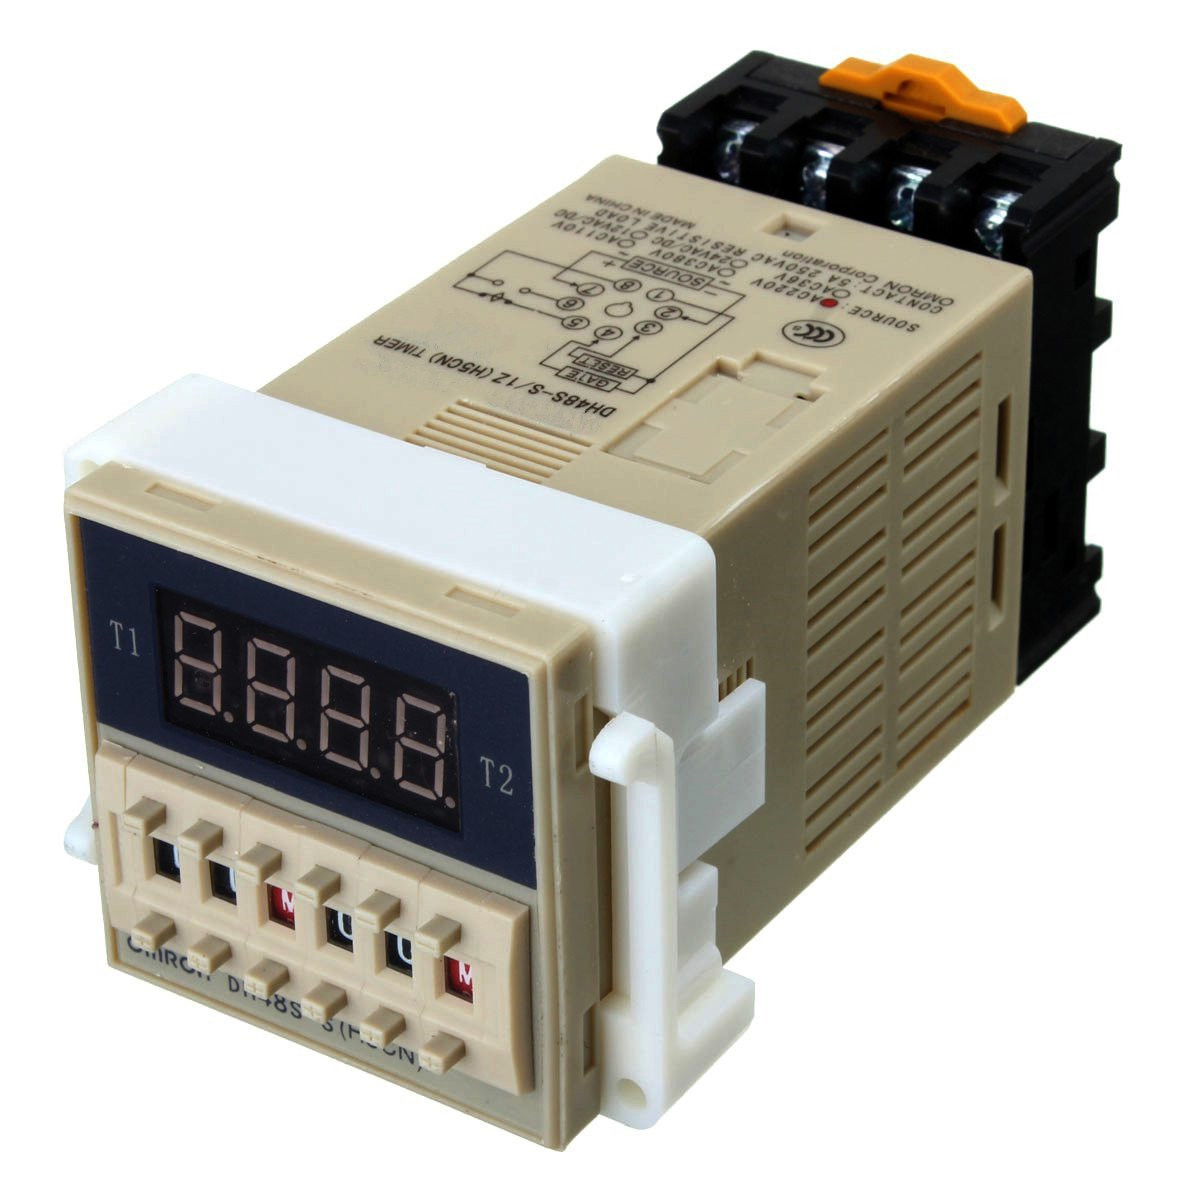 AC 220V 5A Programmable Double Time Timer Delay Relay Device Tool DH48S-S 24vdc new programmable dh48s 2z time delay relay counter